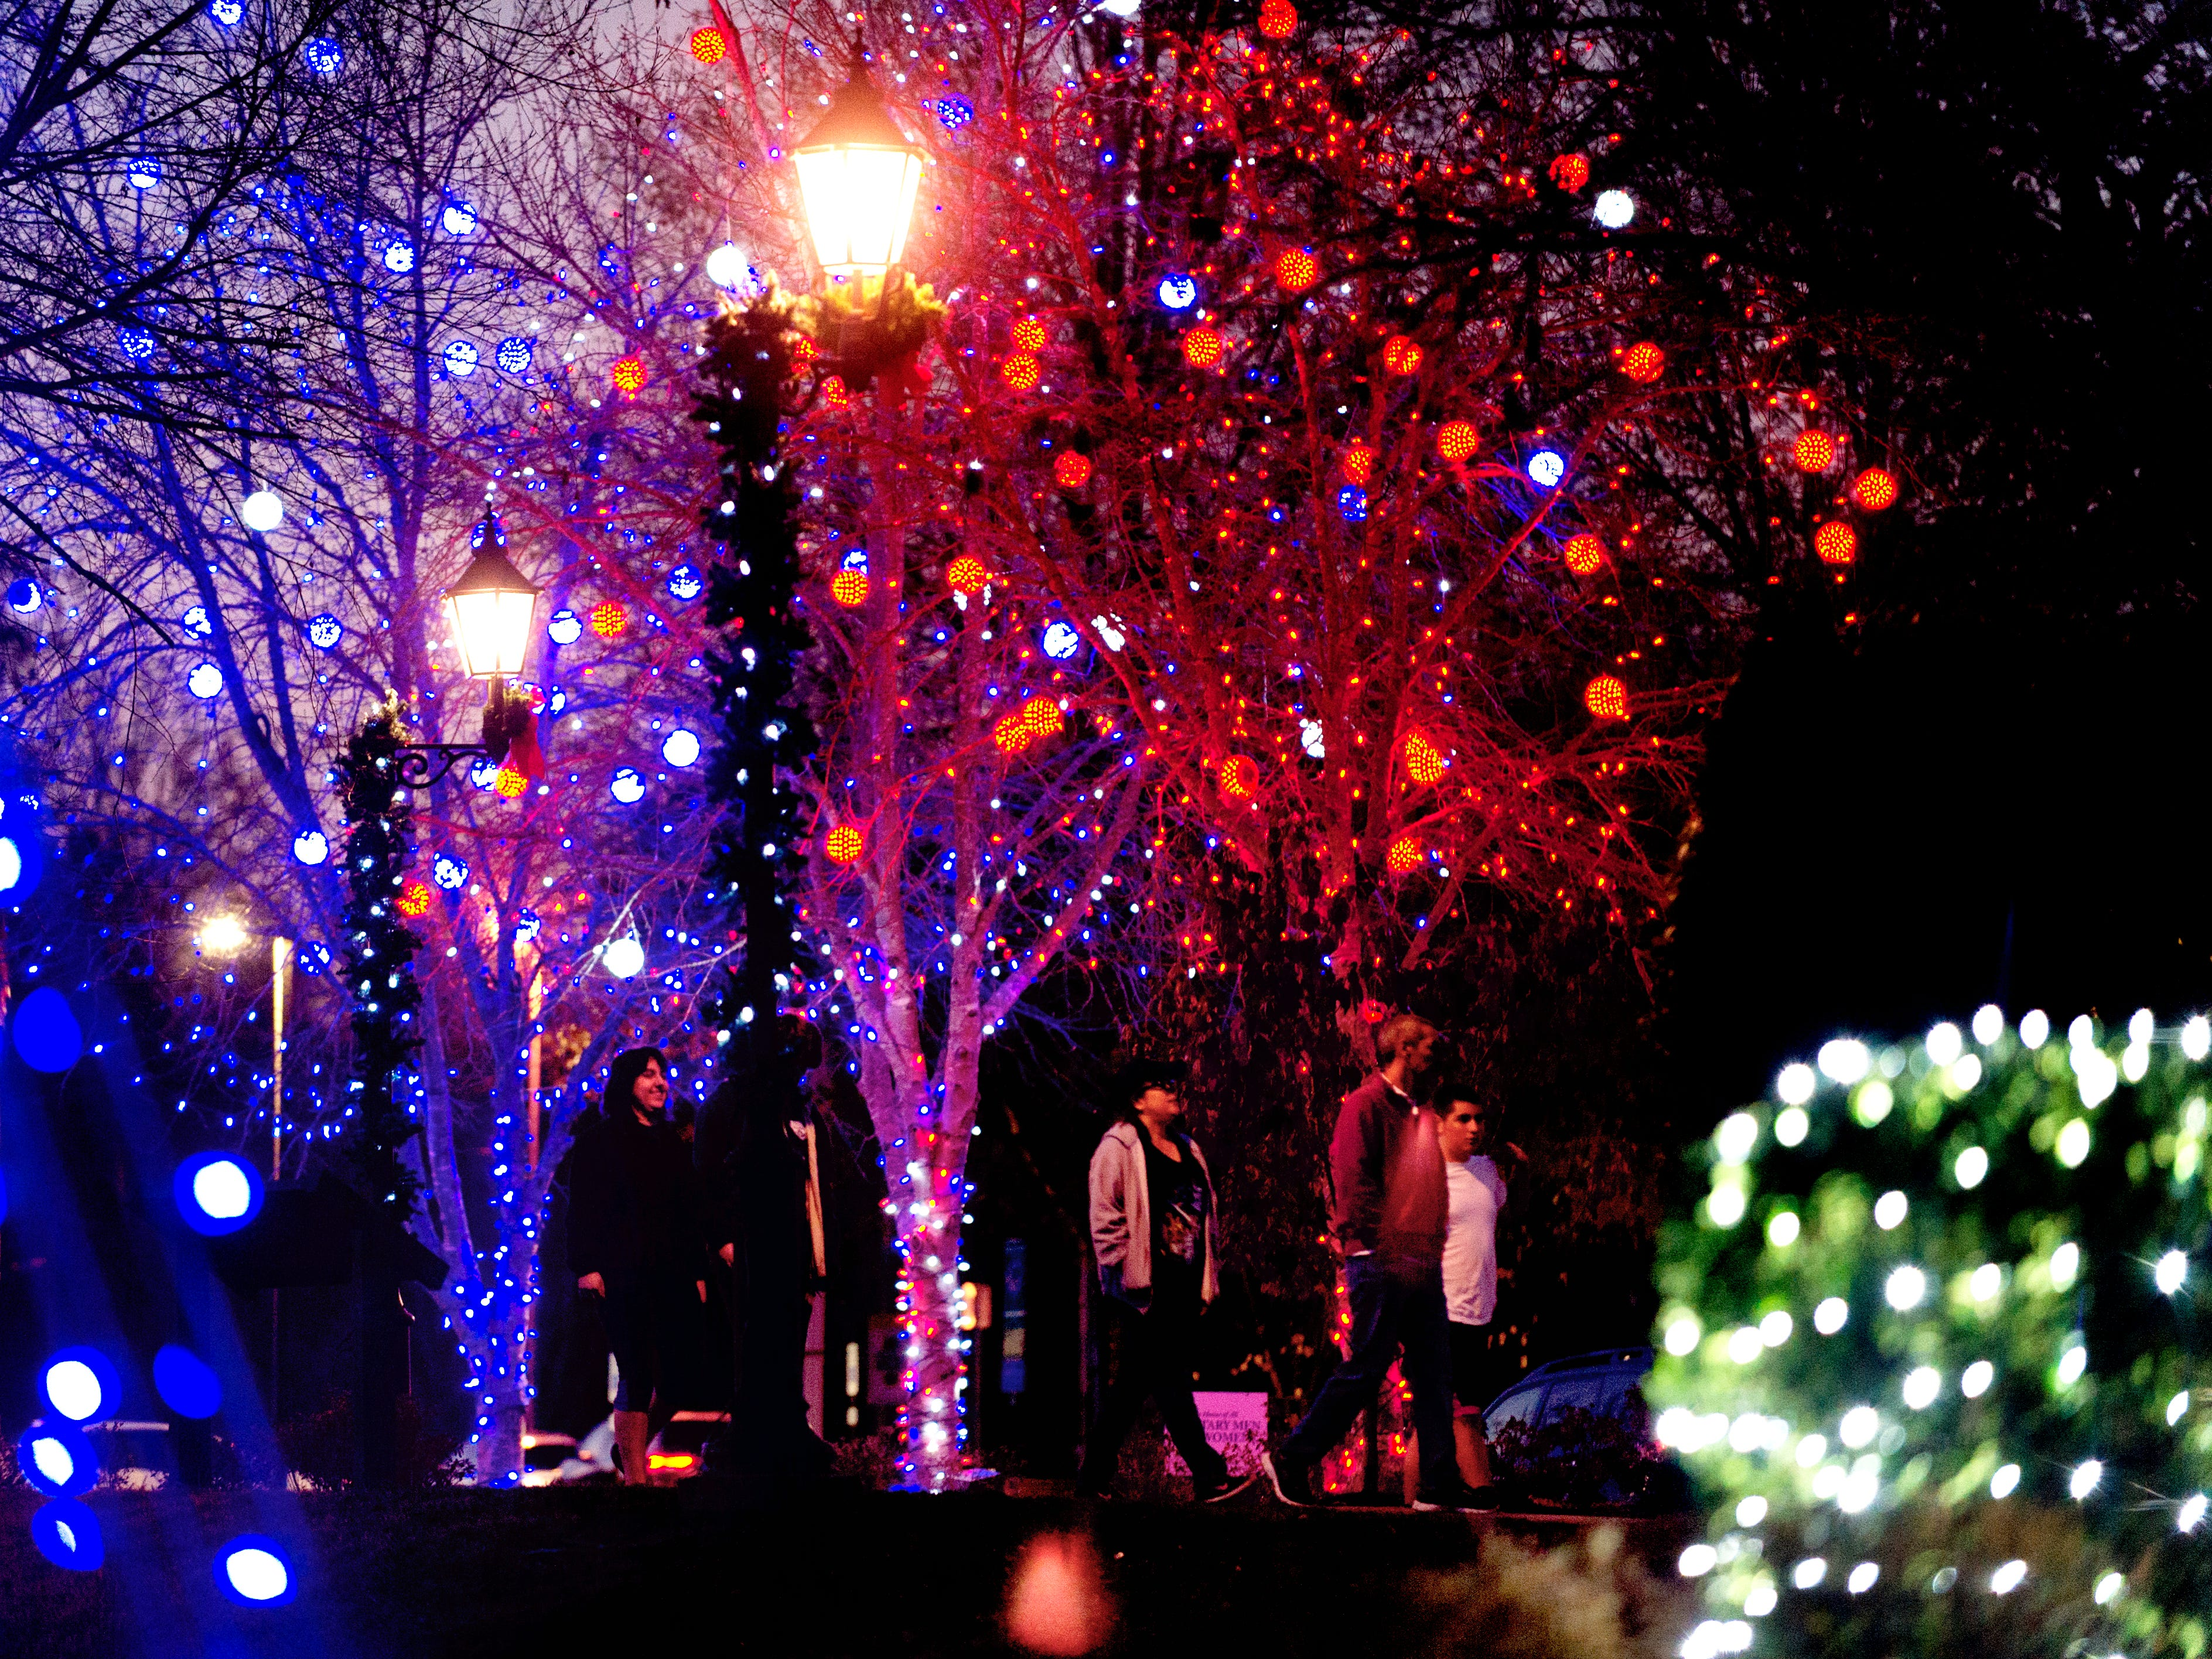 Visitors walk under the lights at the Light the Park Christmas light display at Founders Park in Knoxville, Tennessee on Wednesday, November 29, 2017.